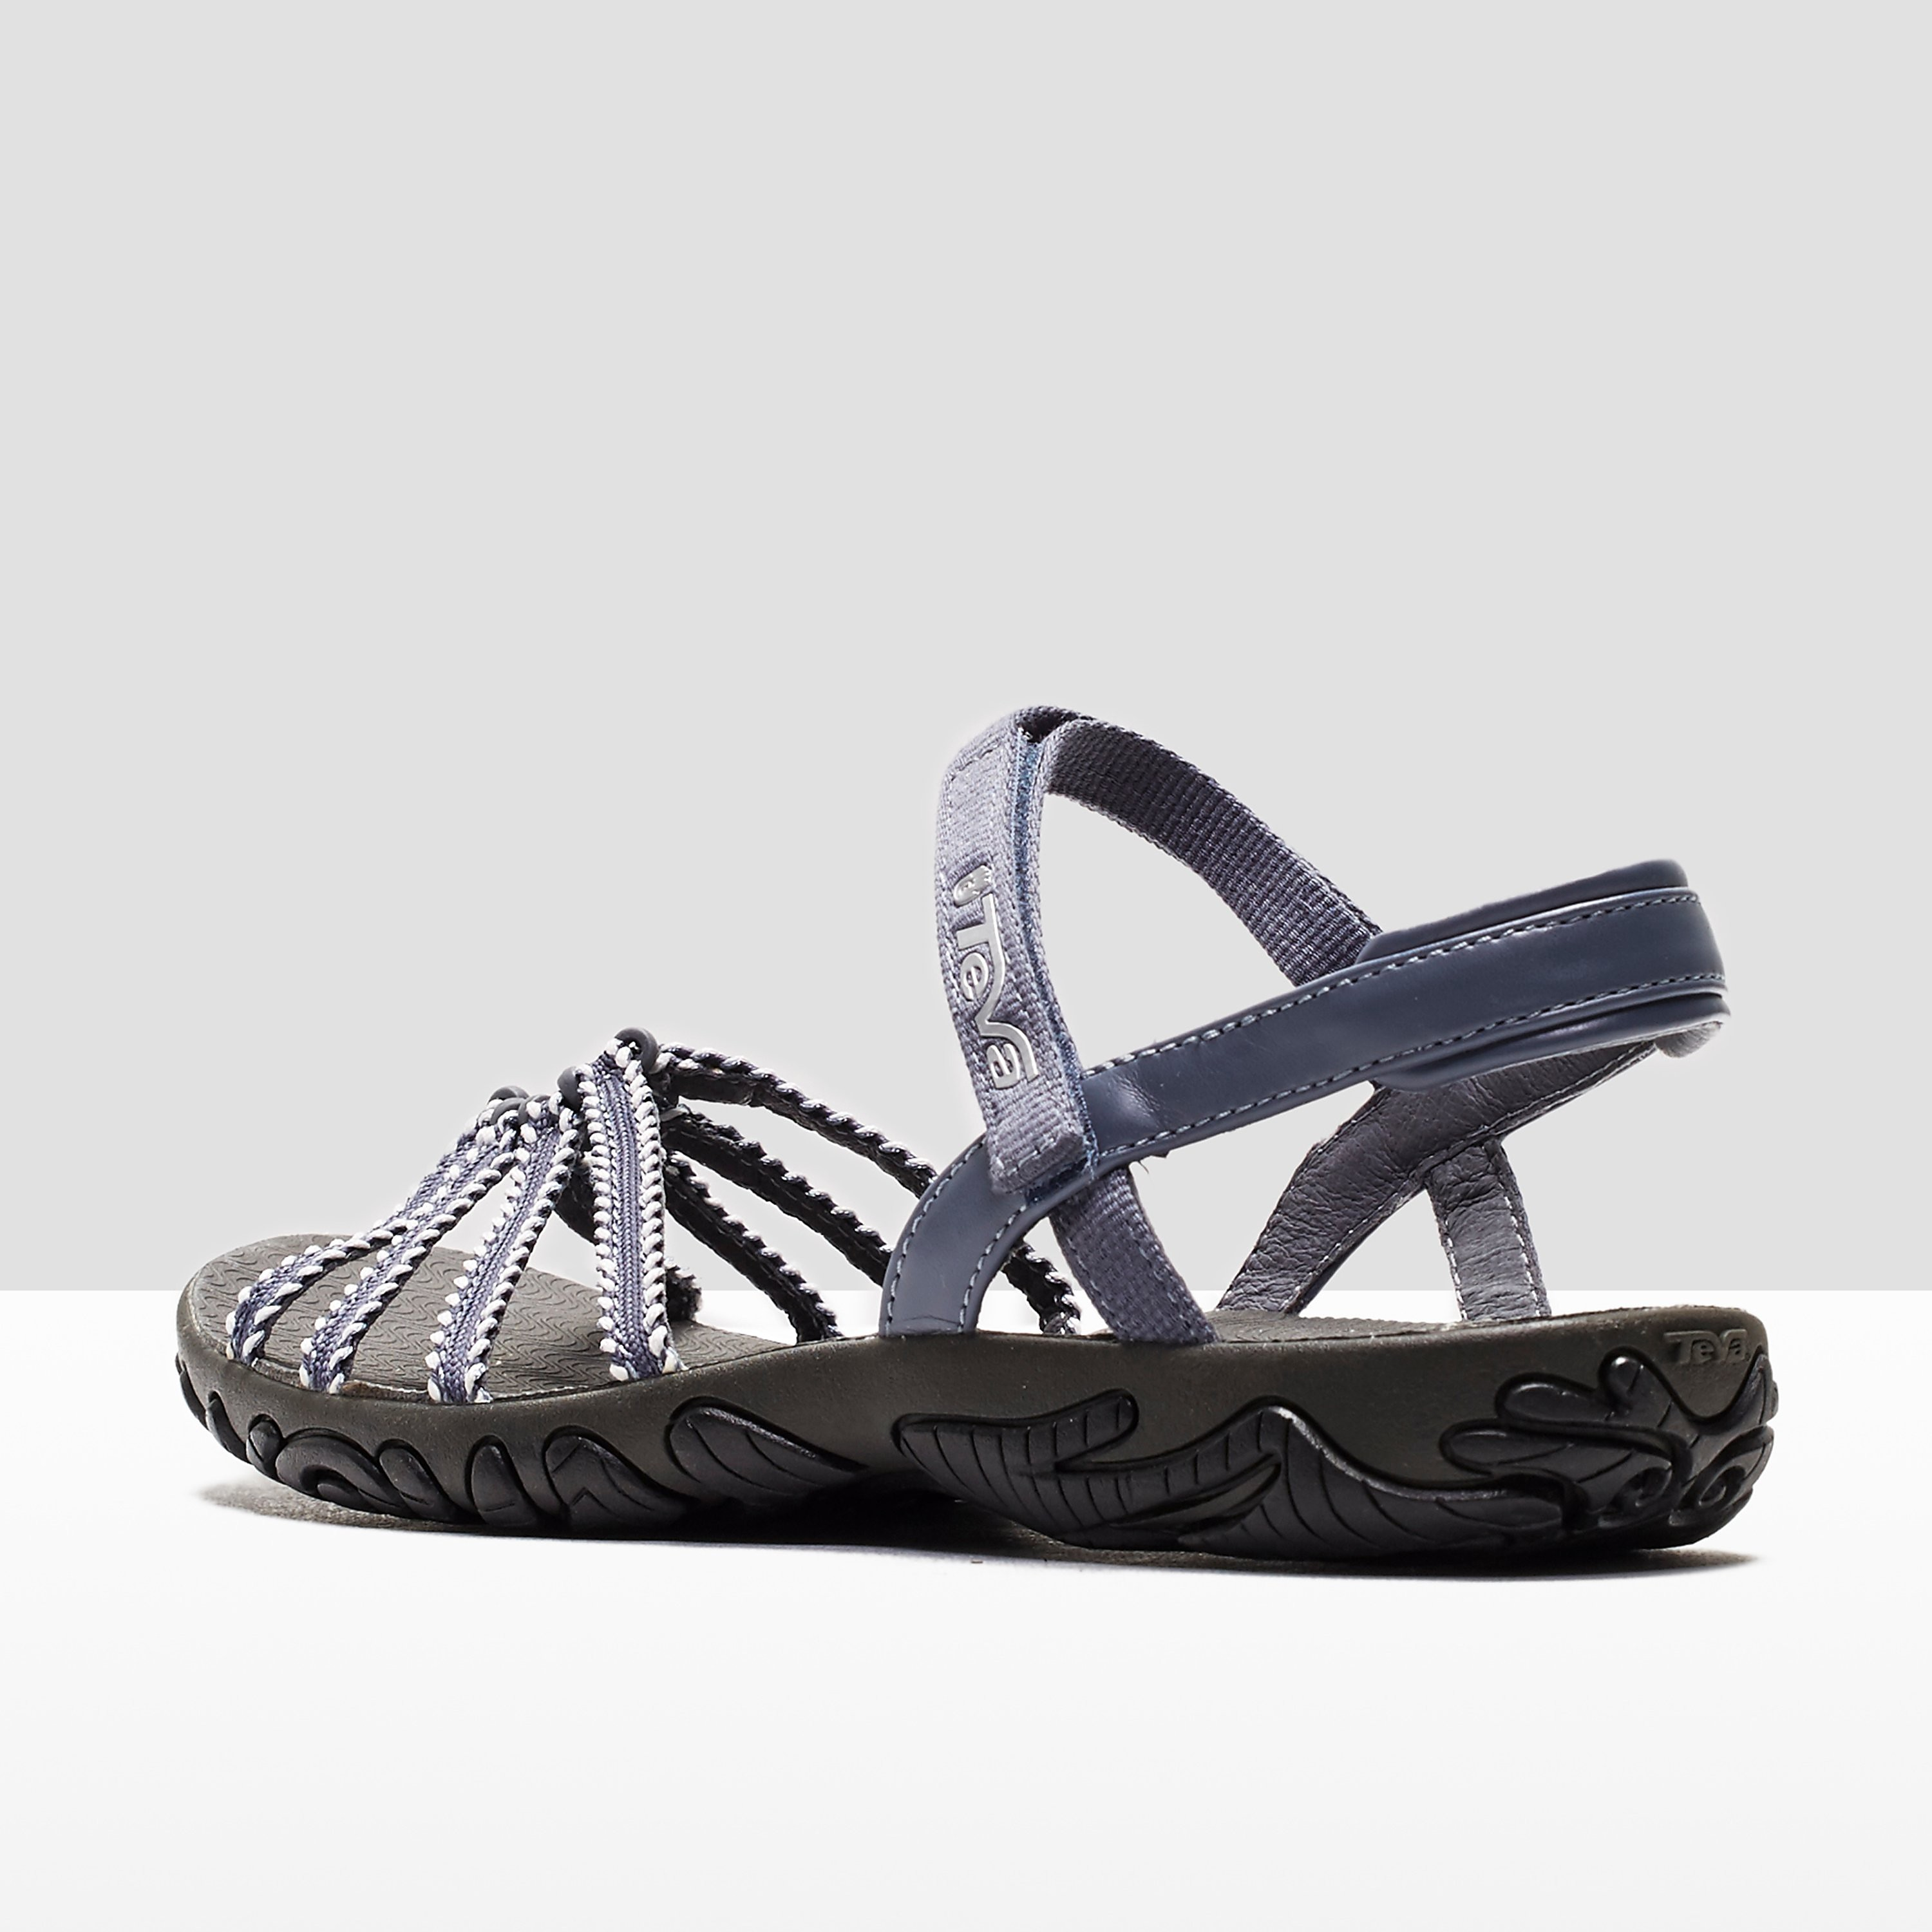 TEVA Kayenta Dream Weave Women's Sandal